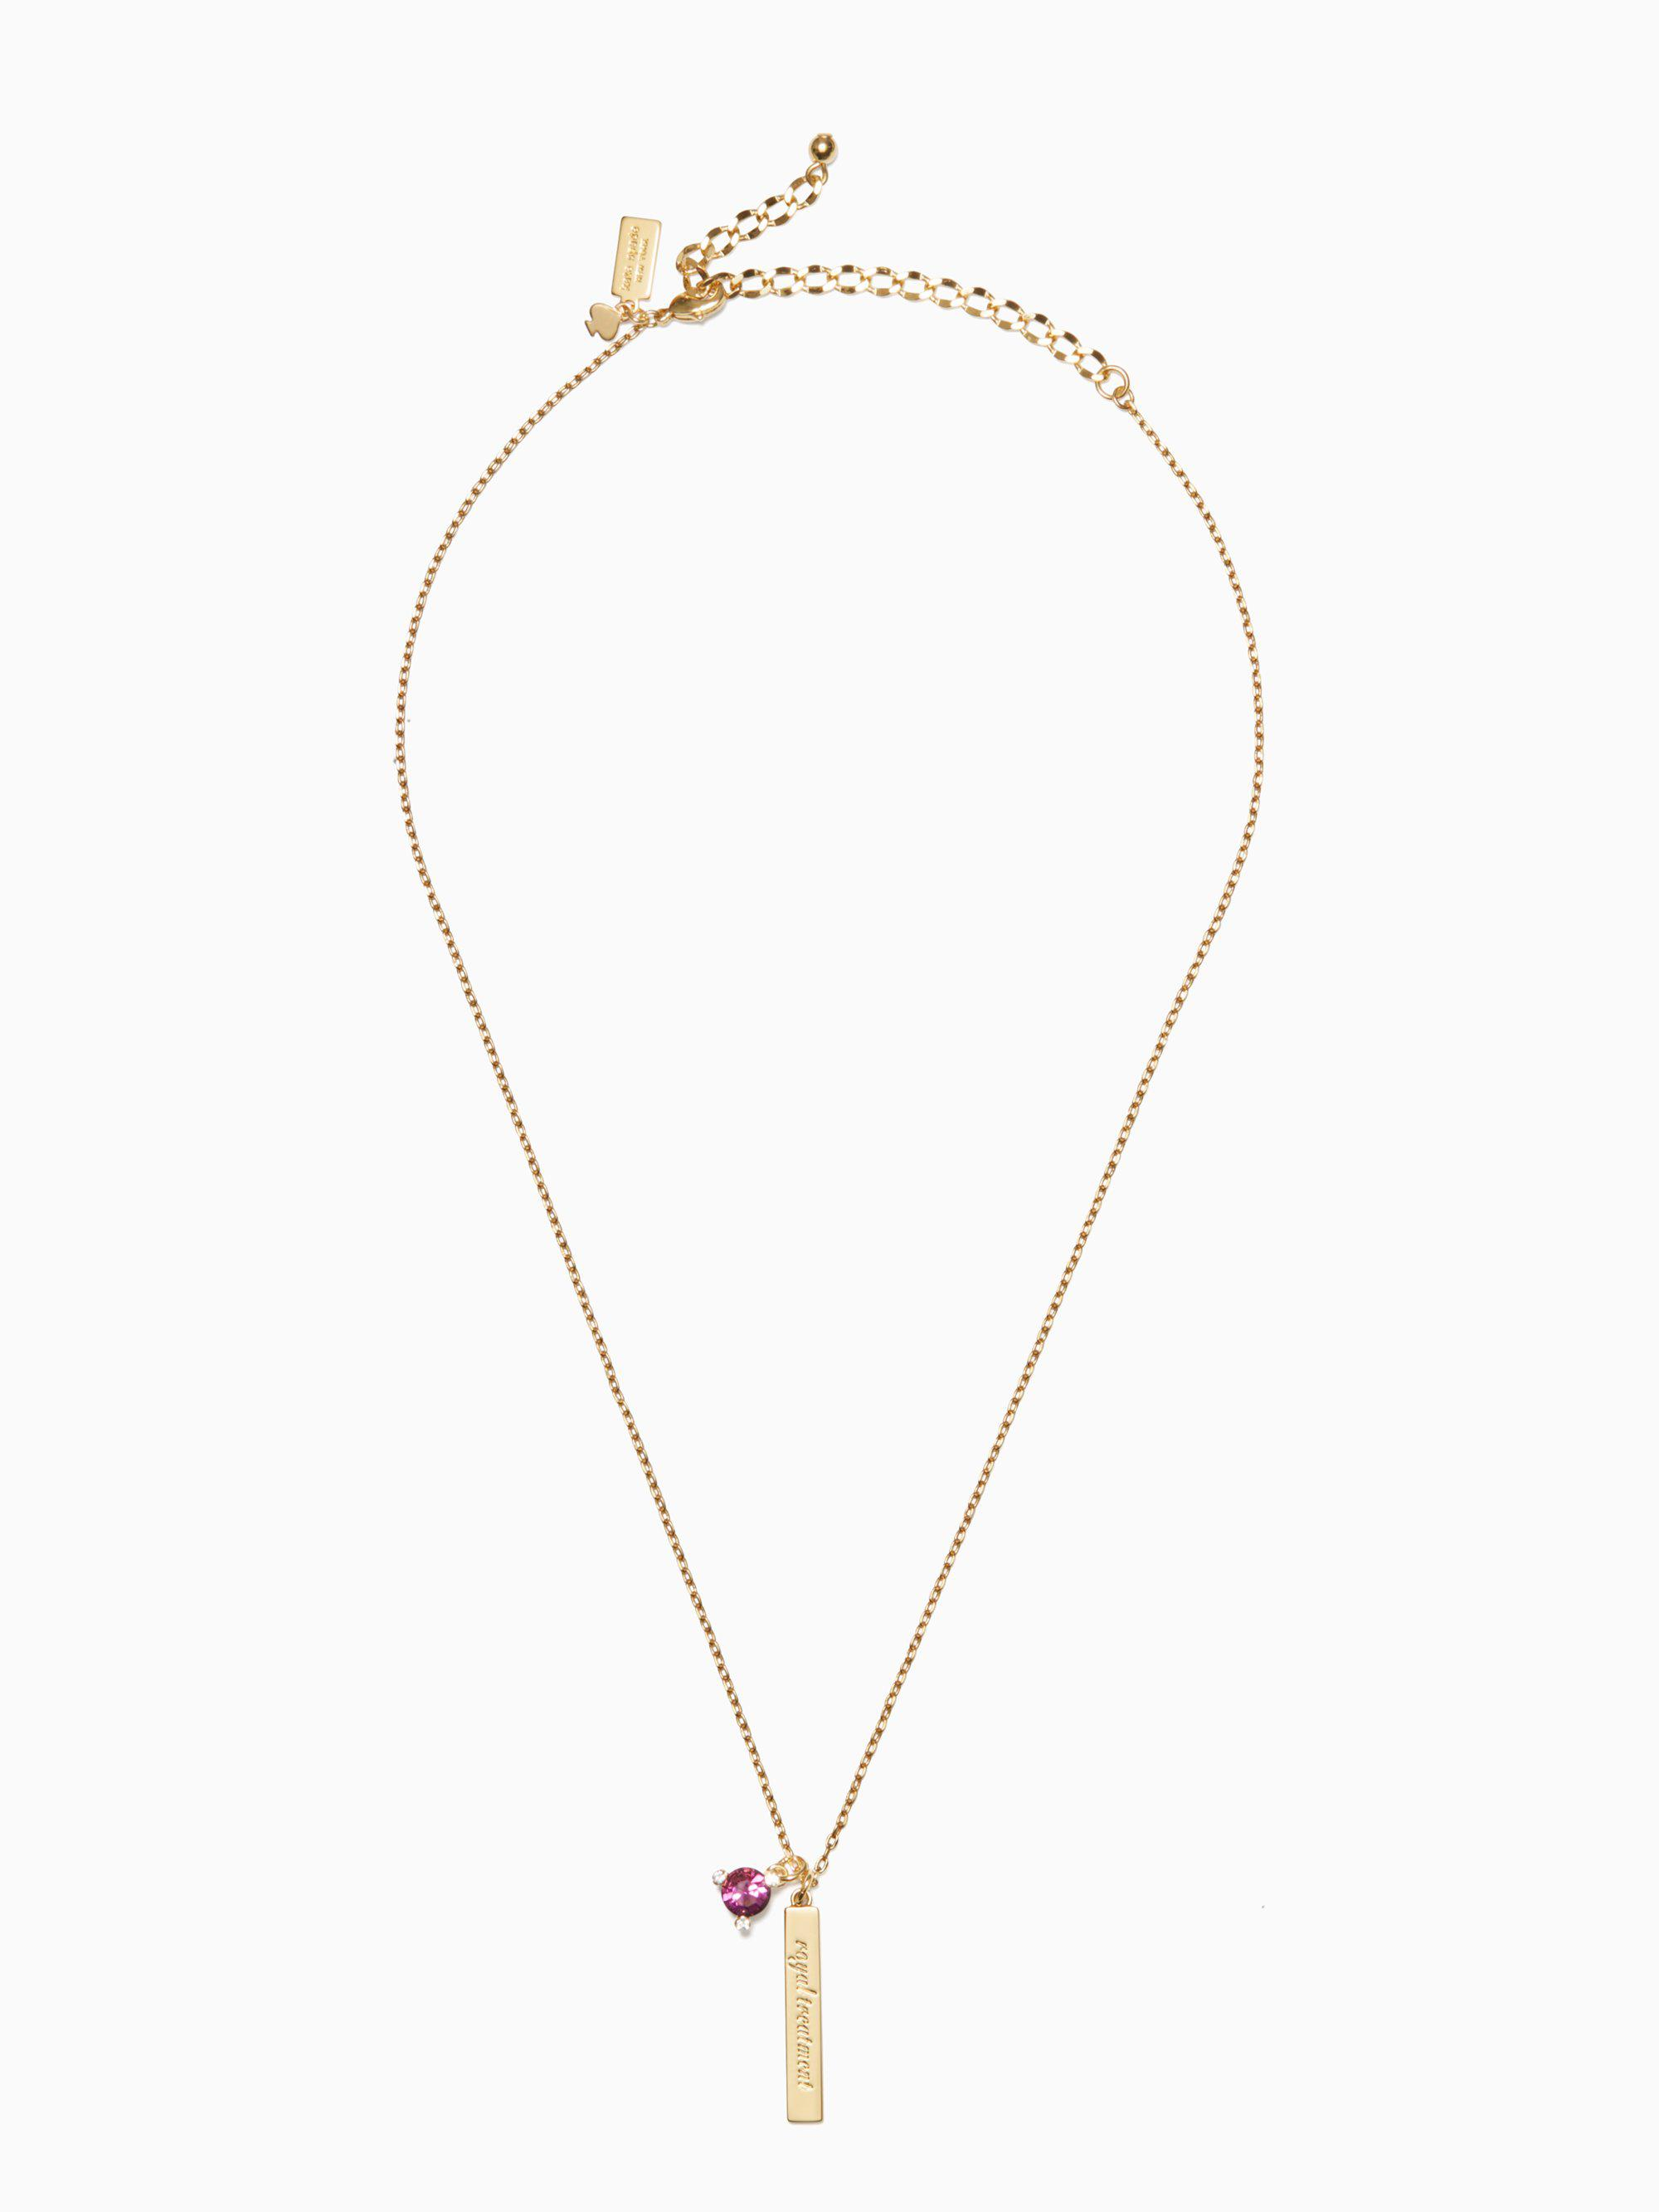 18-Inch Rhodium Plated Necklace with 4mm Amethyst Birthstone Beads and Sterling Silver Graduation Heart Charm.